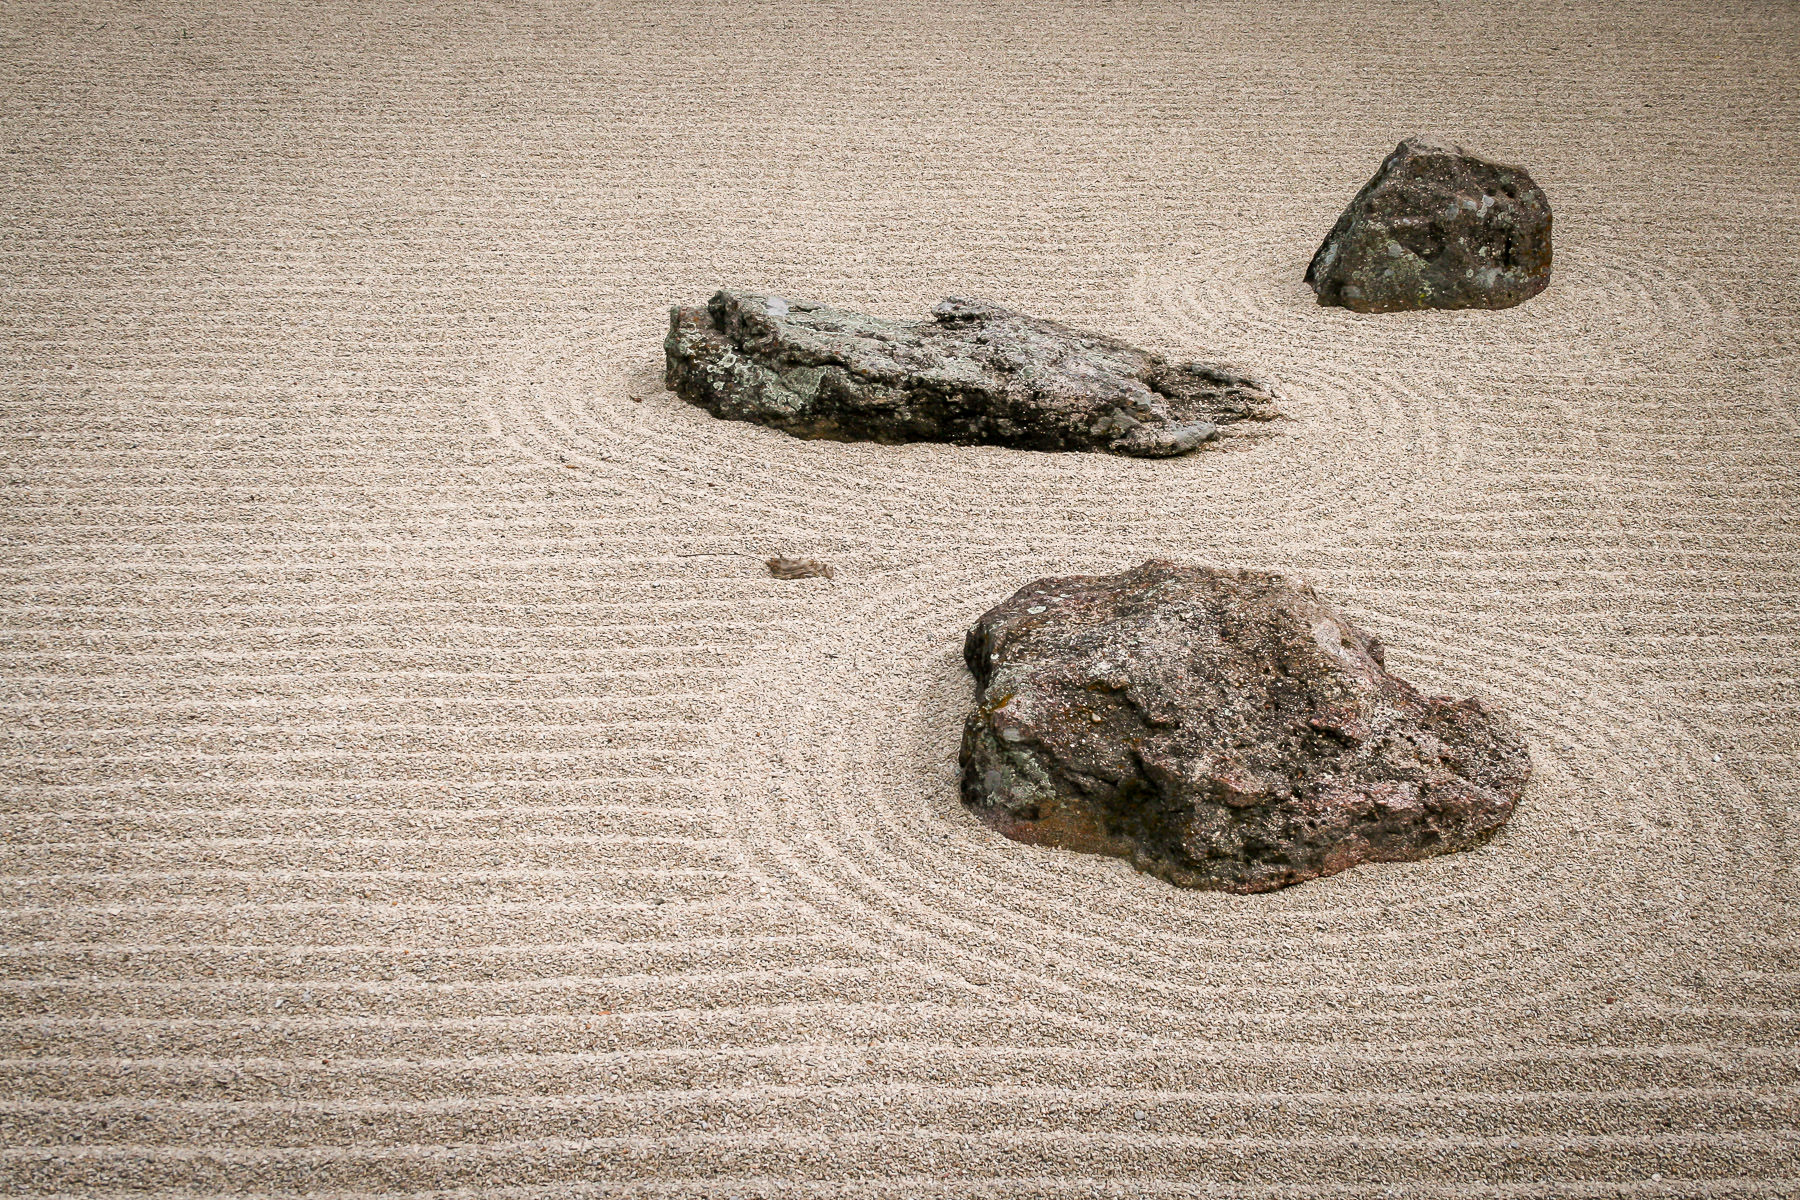 The Zen Garden at the Japanese Gardens in Fort Worth, Texas.